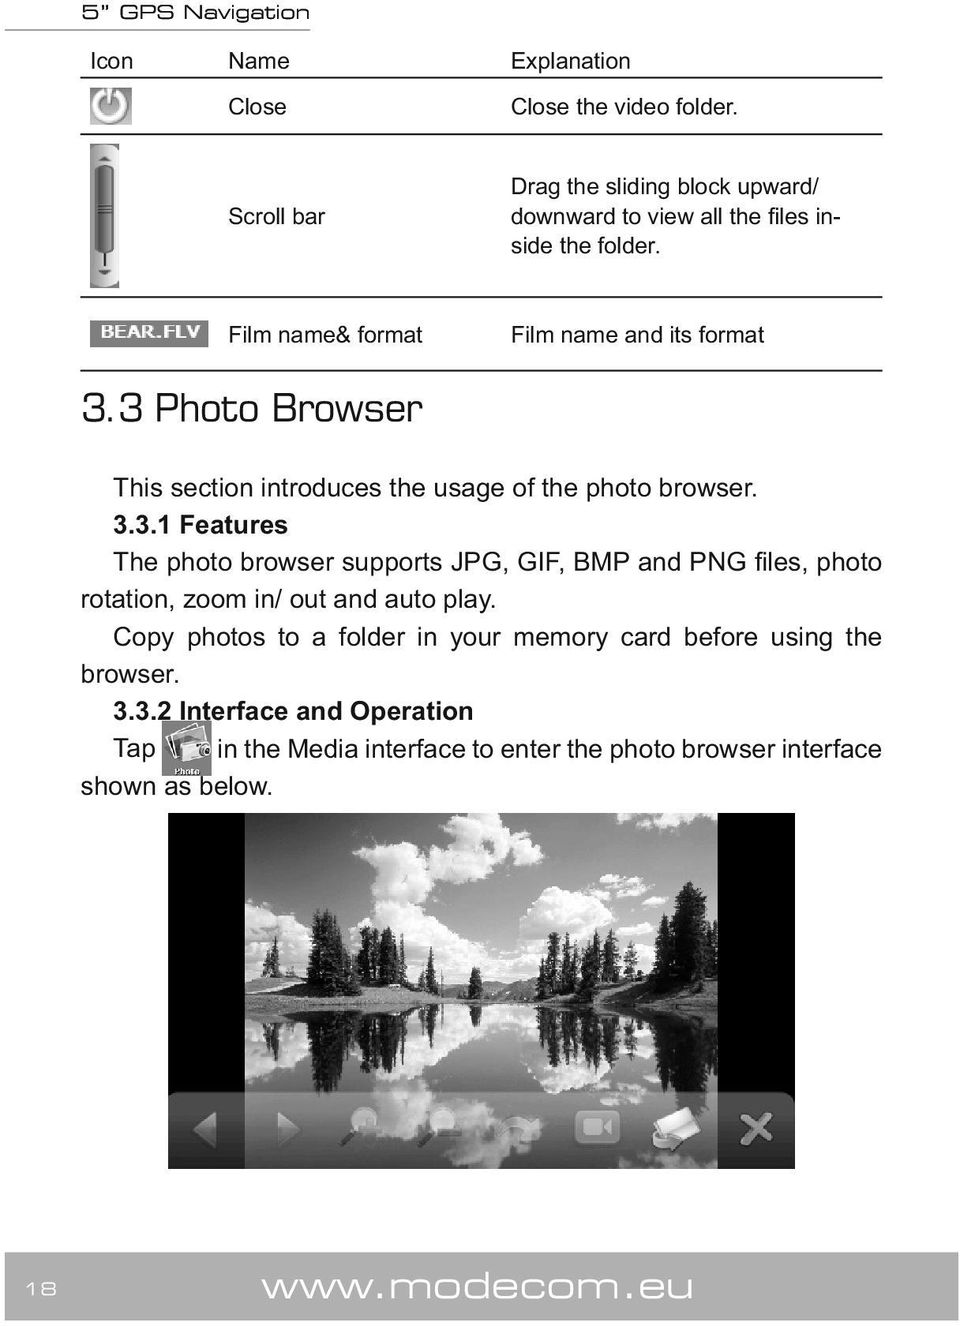 3 Photo Browser This section introduces the usage of the photo browser. 3.3.1 Features The photo browser supports JPG, GIF, BMP and PNG files, photo rotation, zoom in/ out and auto play.